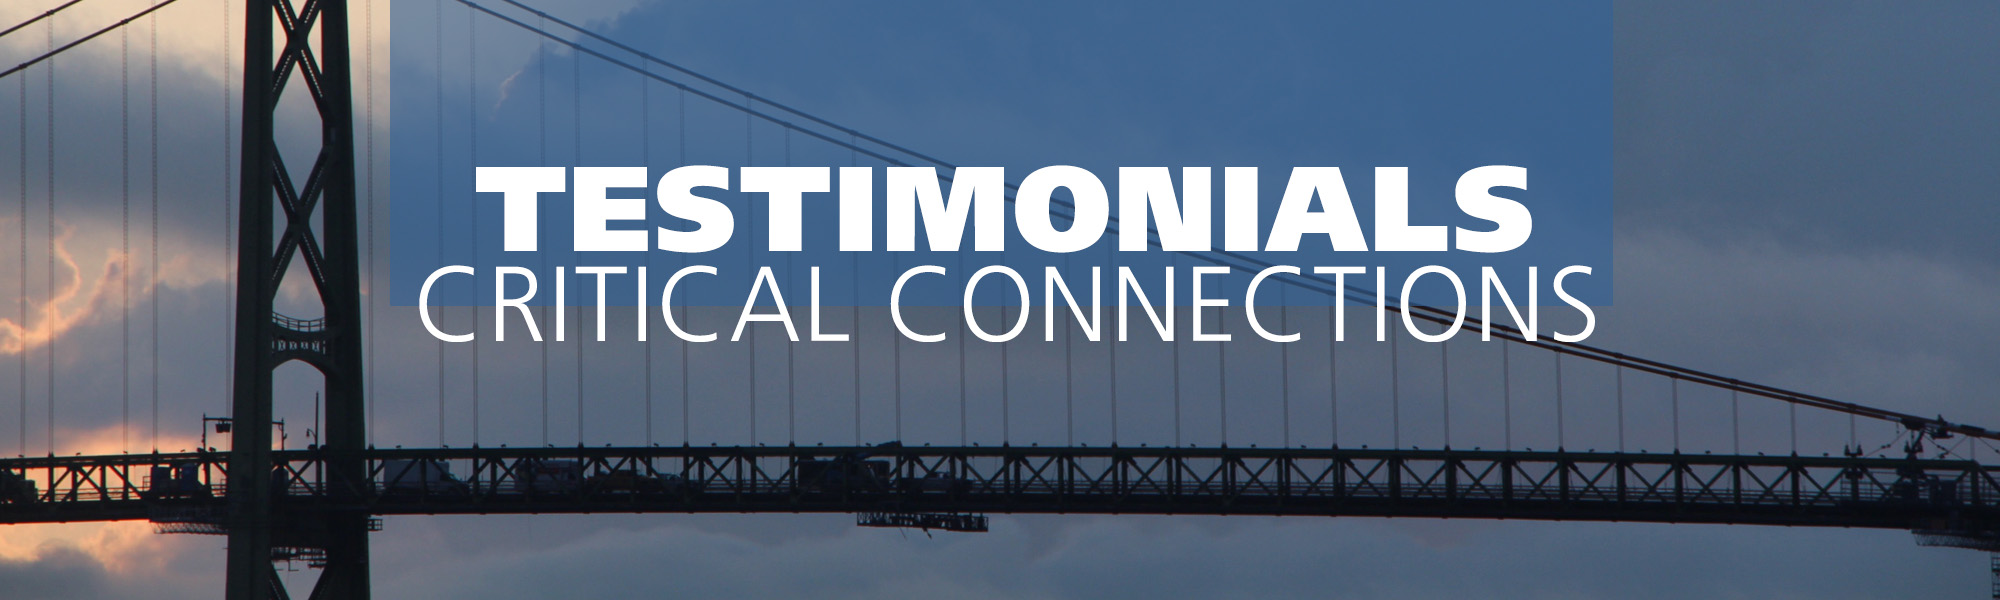 Testimonials-Critical Connections